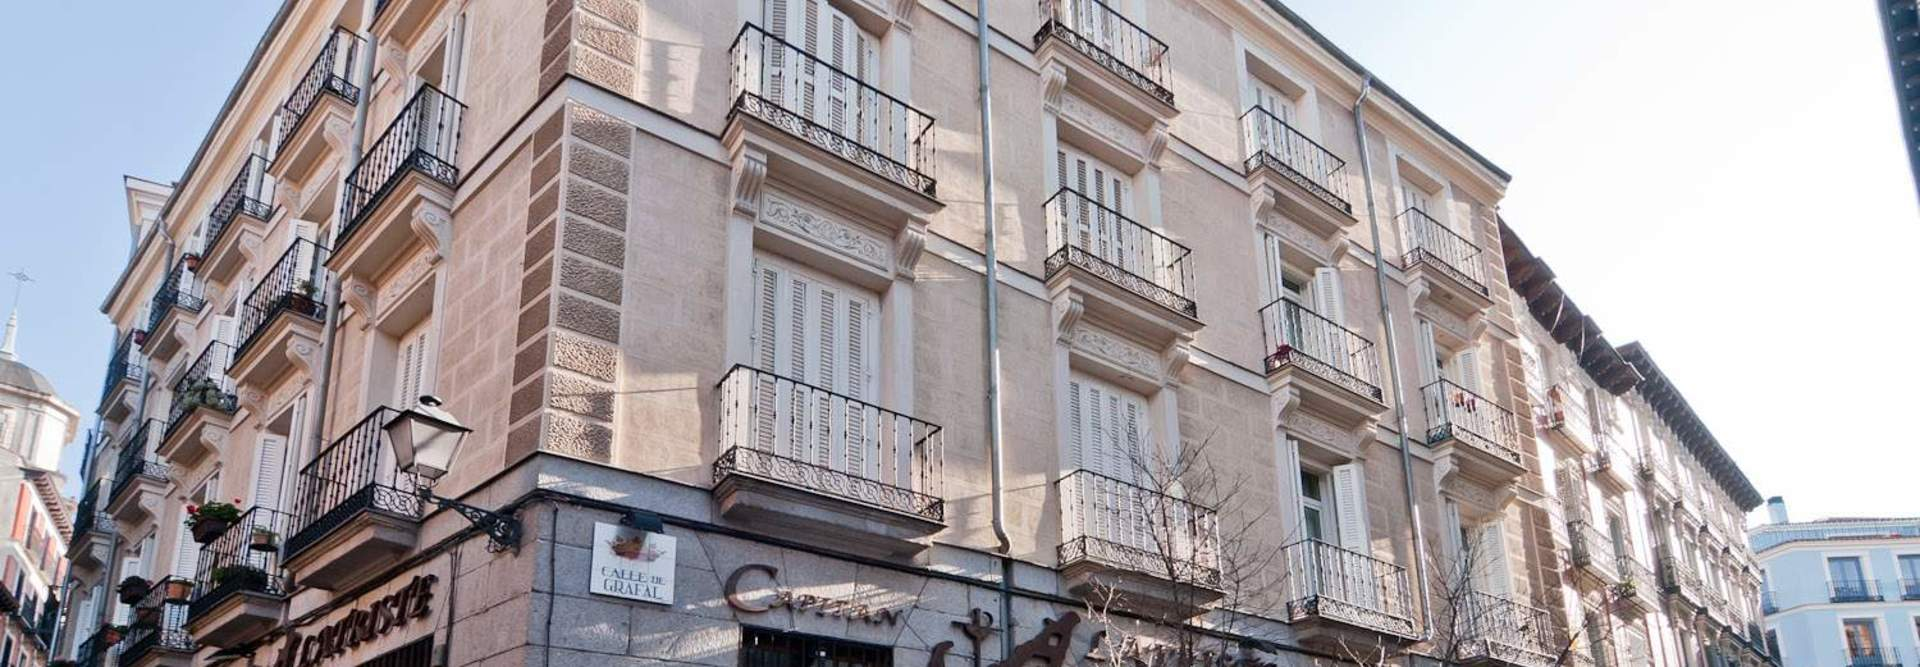 Home alquiler apartamento madrid centro mad4rent  4